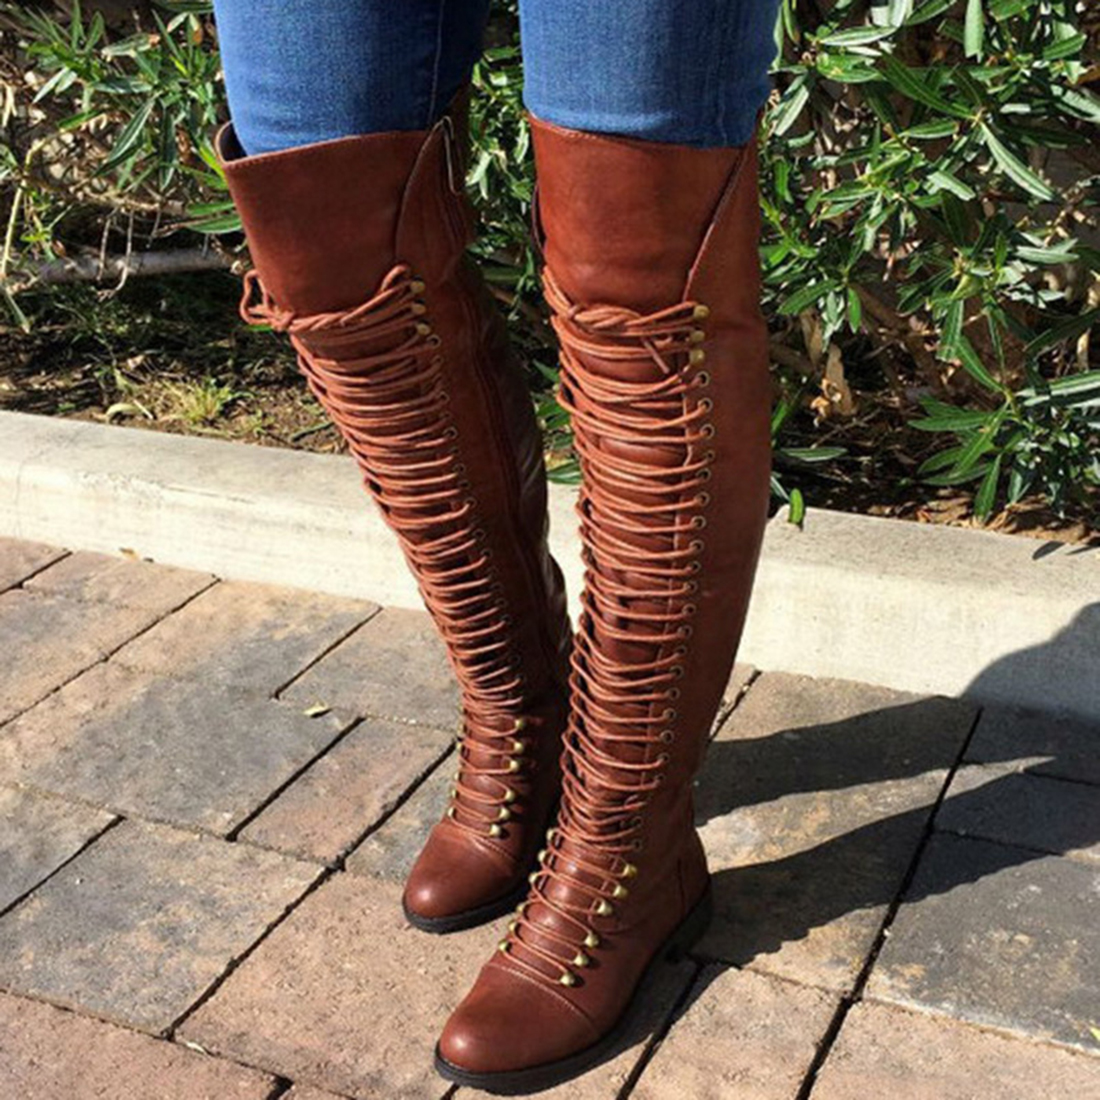 Slim Boots Sexy Lace-Up over the knee high PU women boots women's fashion antumn winter thigh high boots shoes woman shoes woman new fashion sexy square over the knee high boots high heels winter autumn boots lace up slim fit leather boots